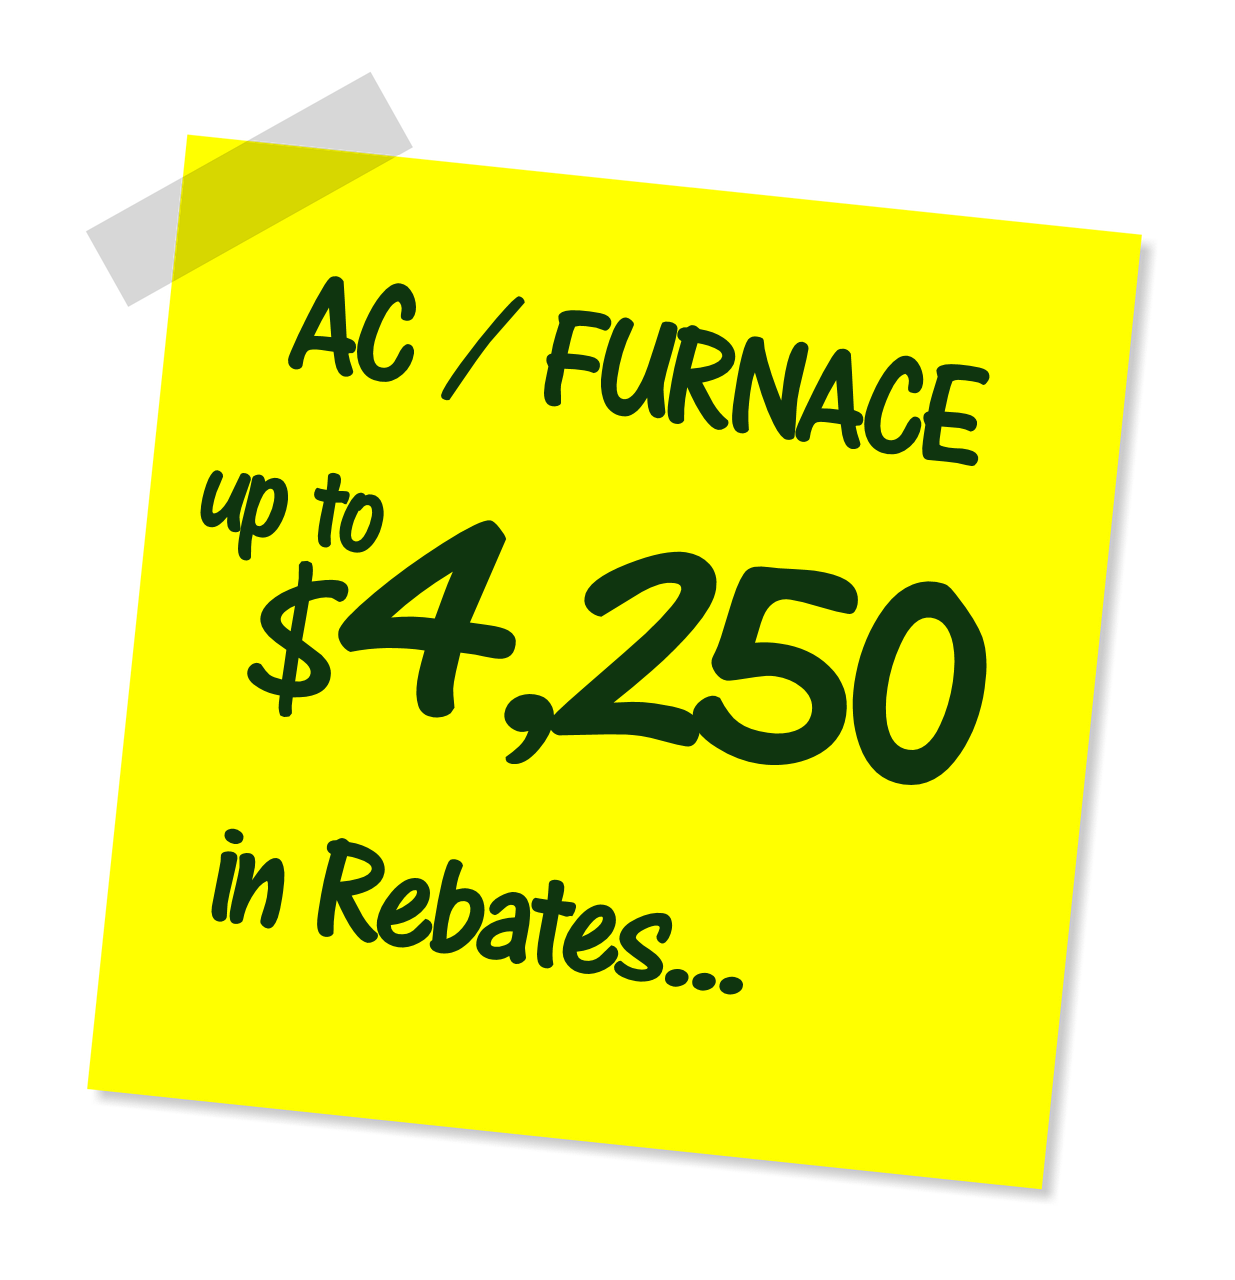 Gas furnaces installations and repairs constant home for Choosing a furnace